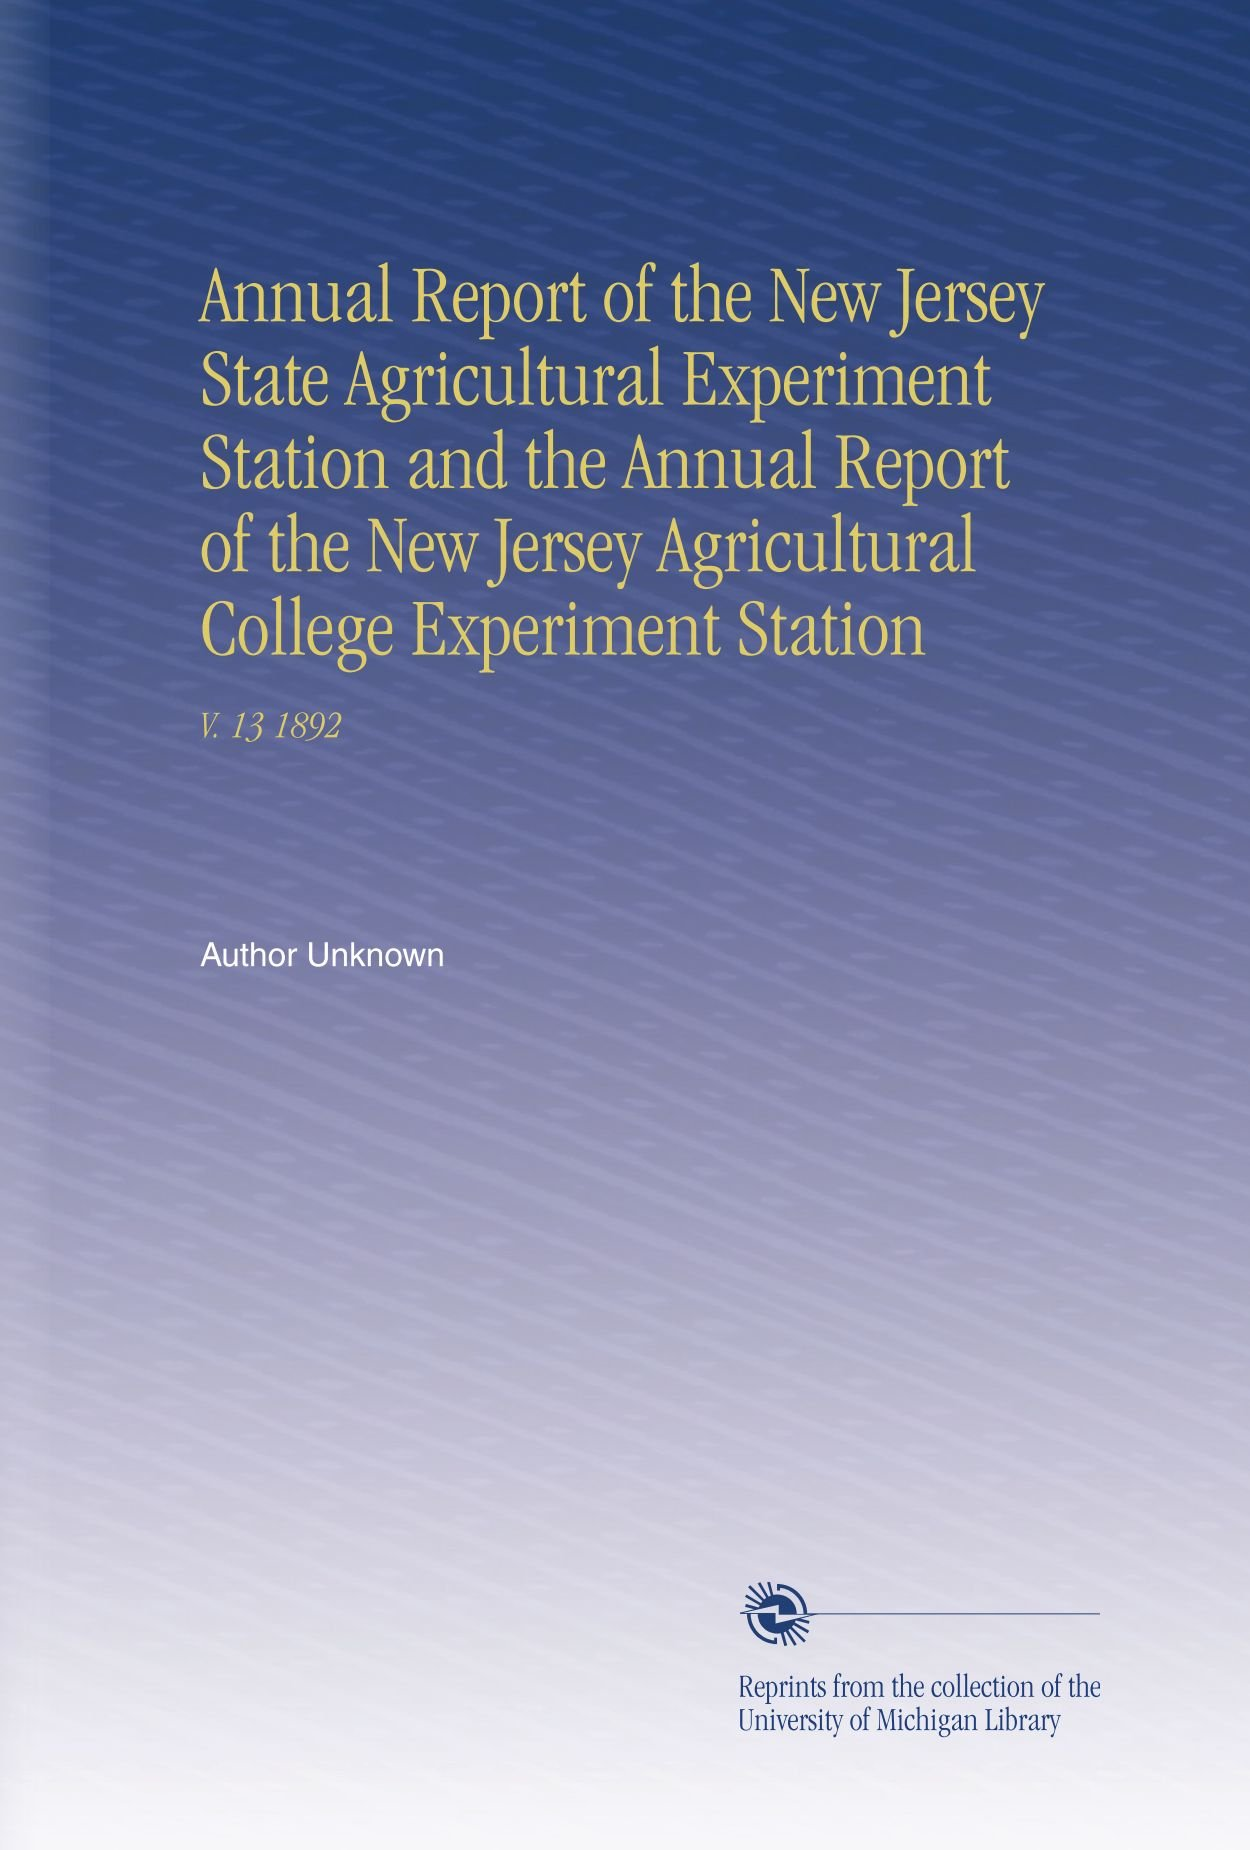 Annual Report of the New Jersey State Agricultural Experiment Station and the Annual Report of the New Jersey Agricultural College Experiment Station: V. 13 1892 pdf epub